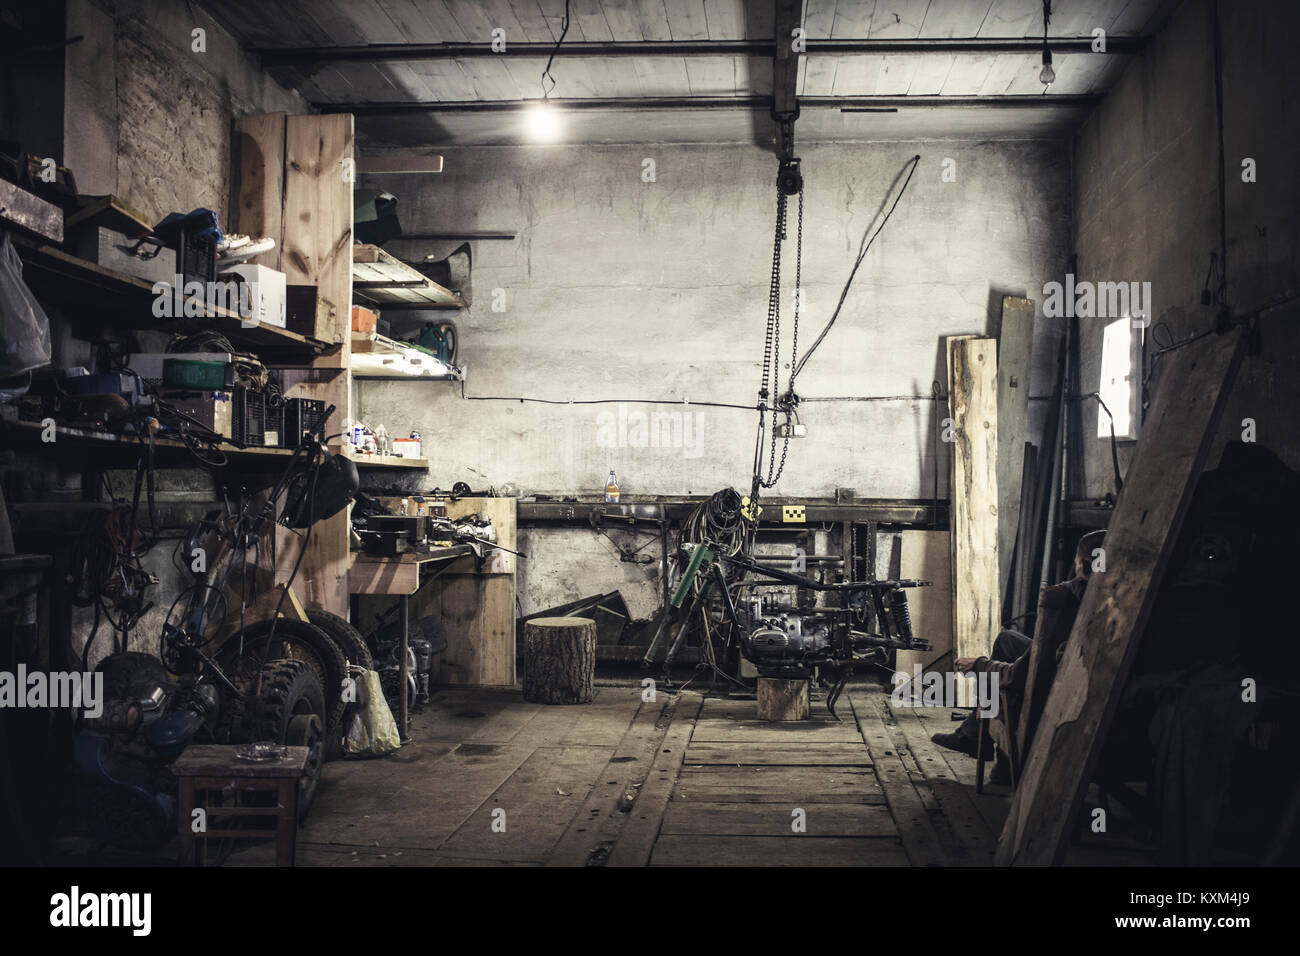 Mechanic sitting in armchair looking at dismantled vintage motorcycle in workshop - Stock Image